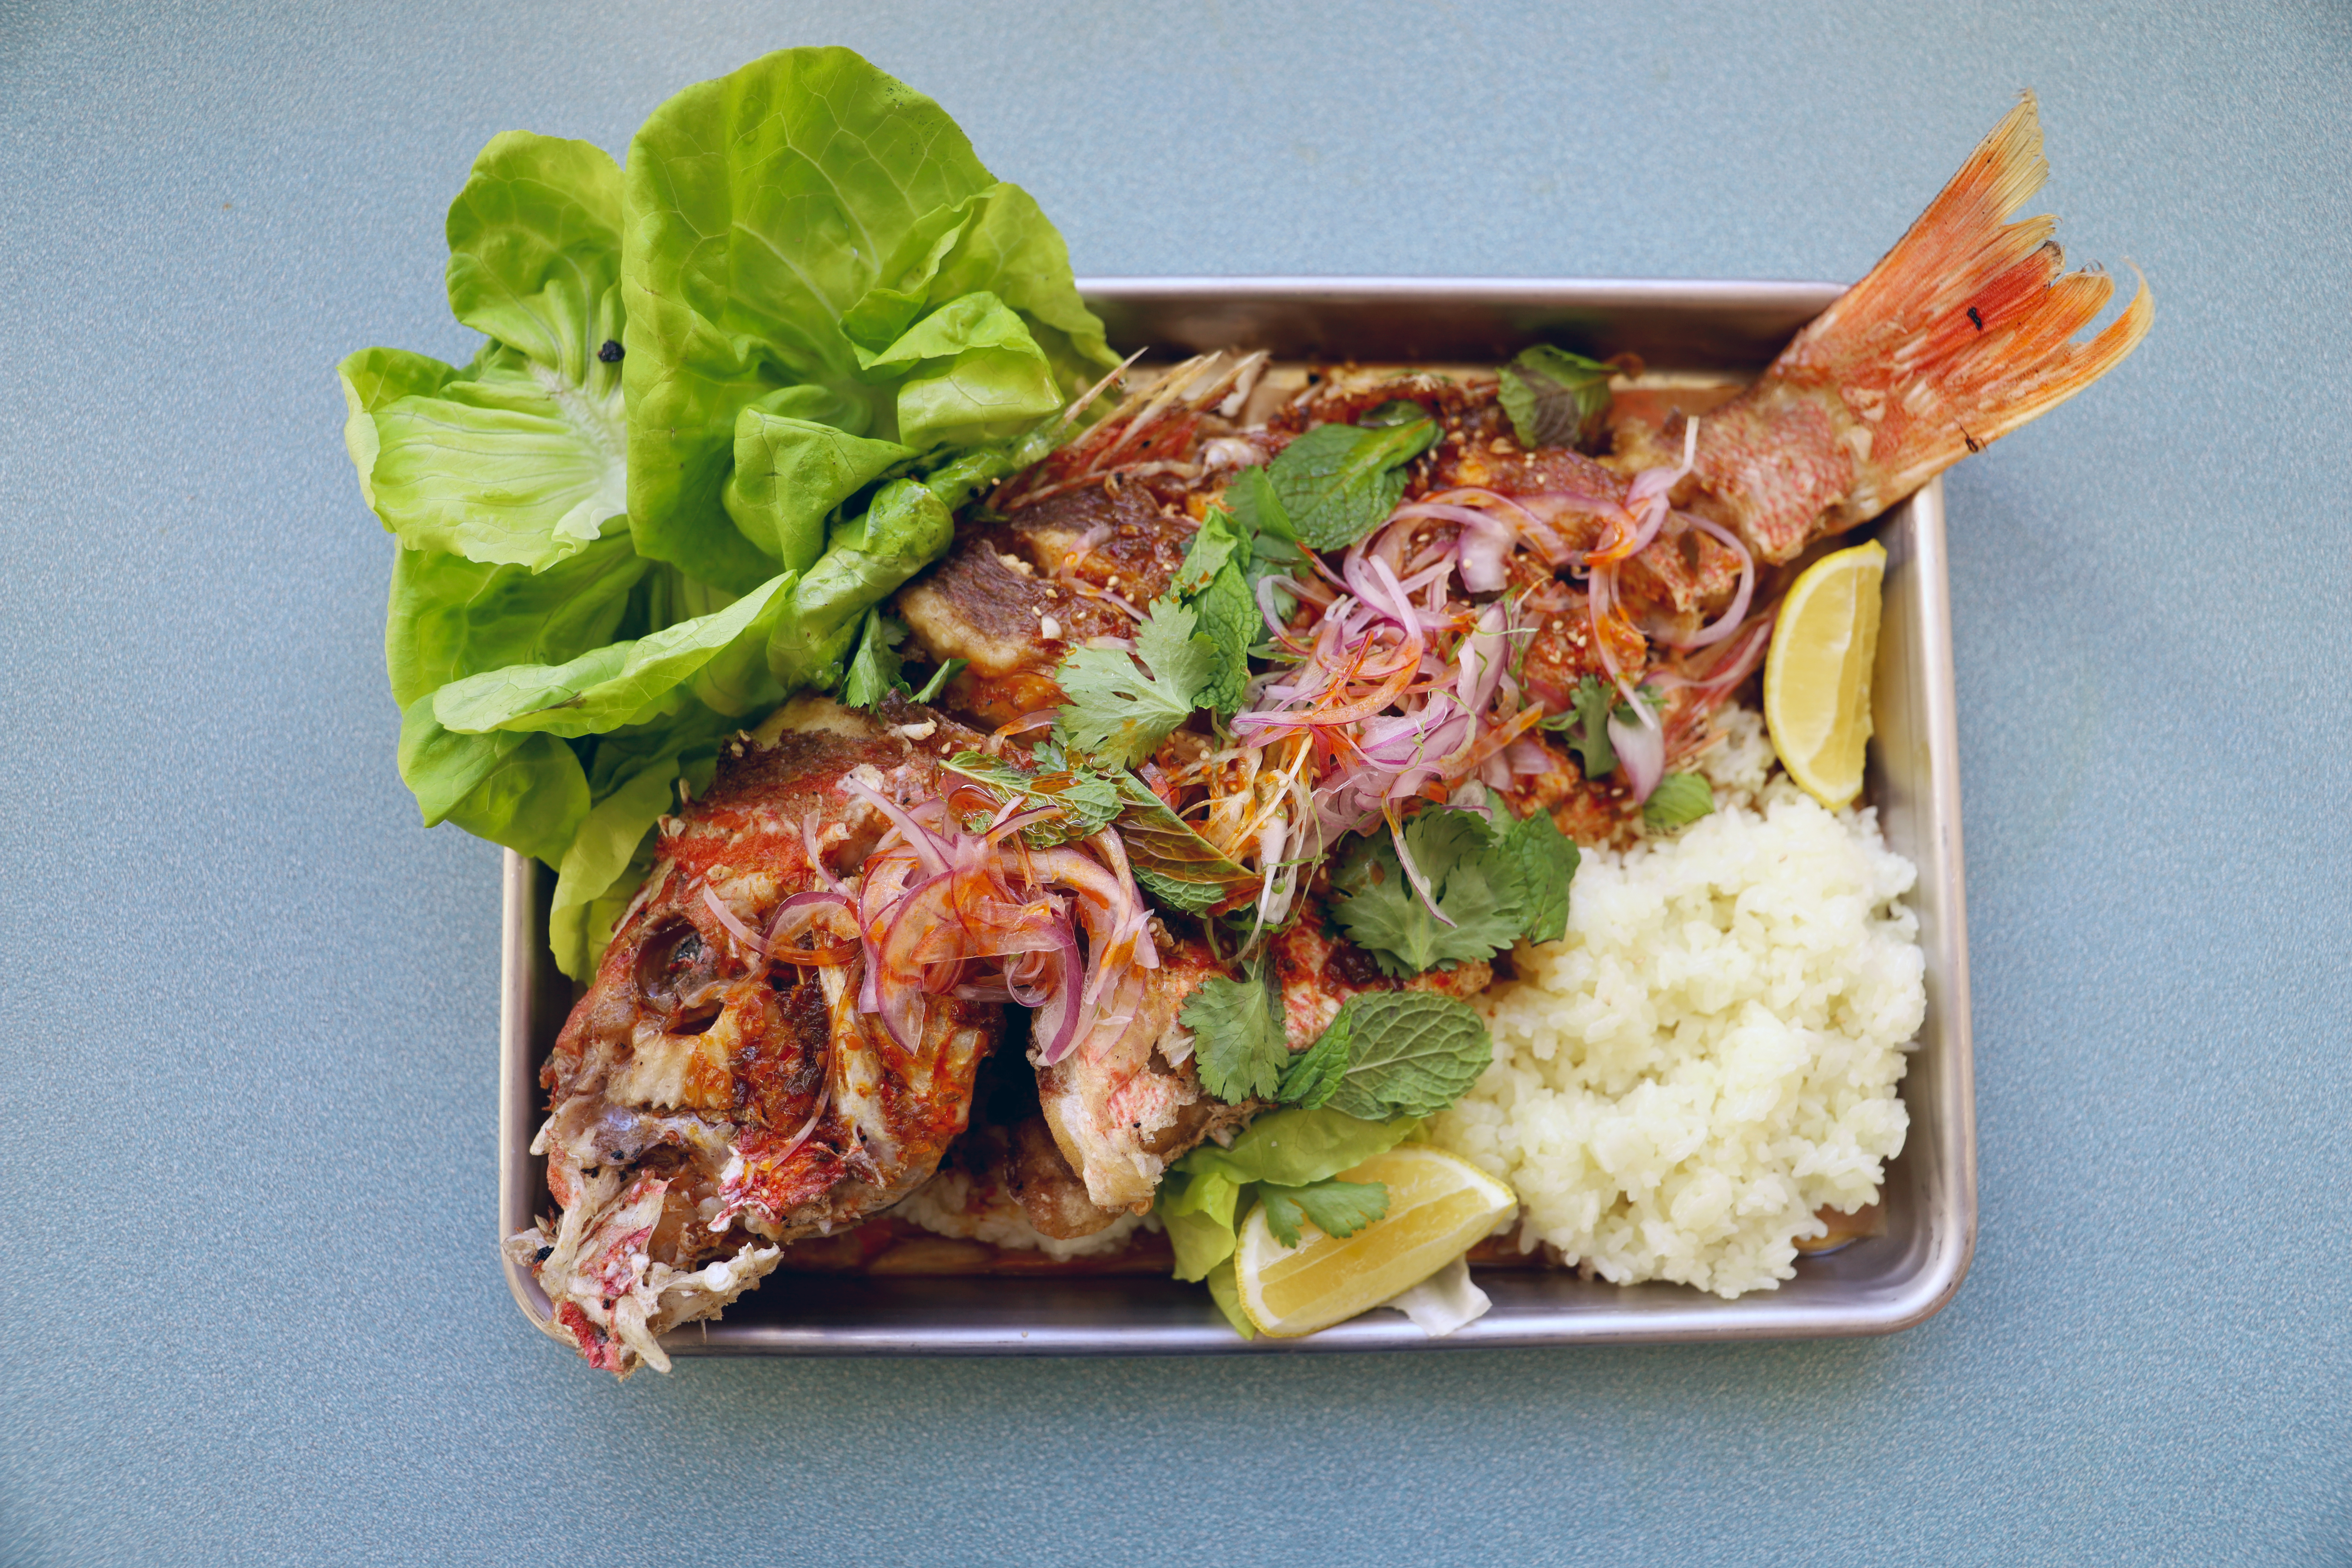 A fish dish from Salty Cargo